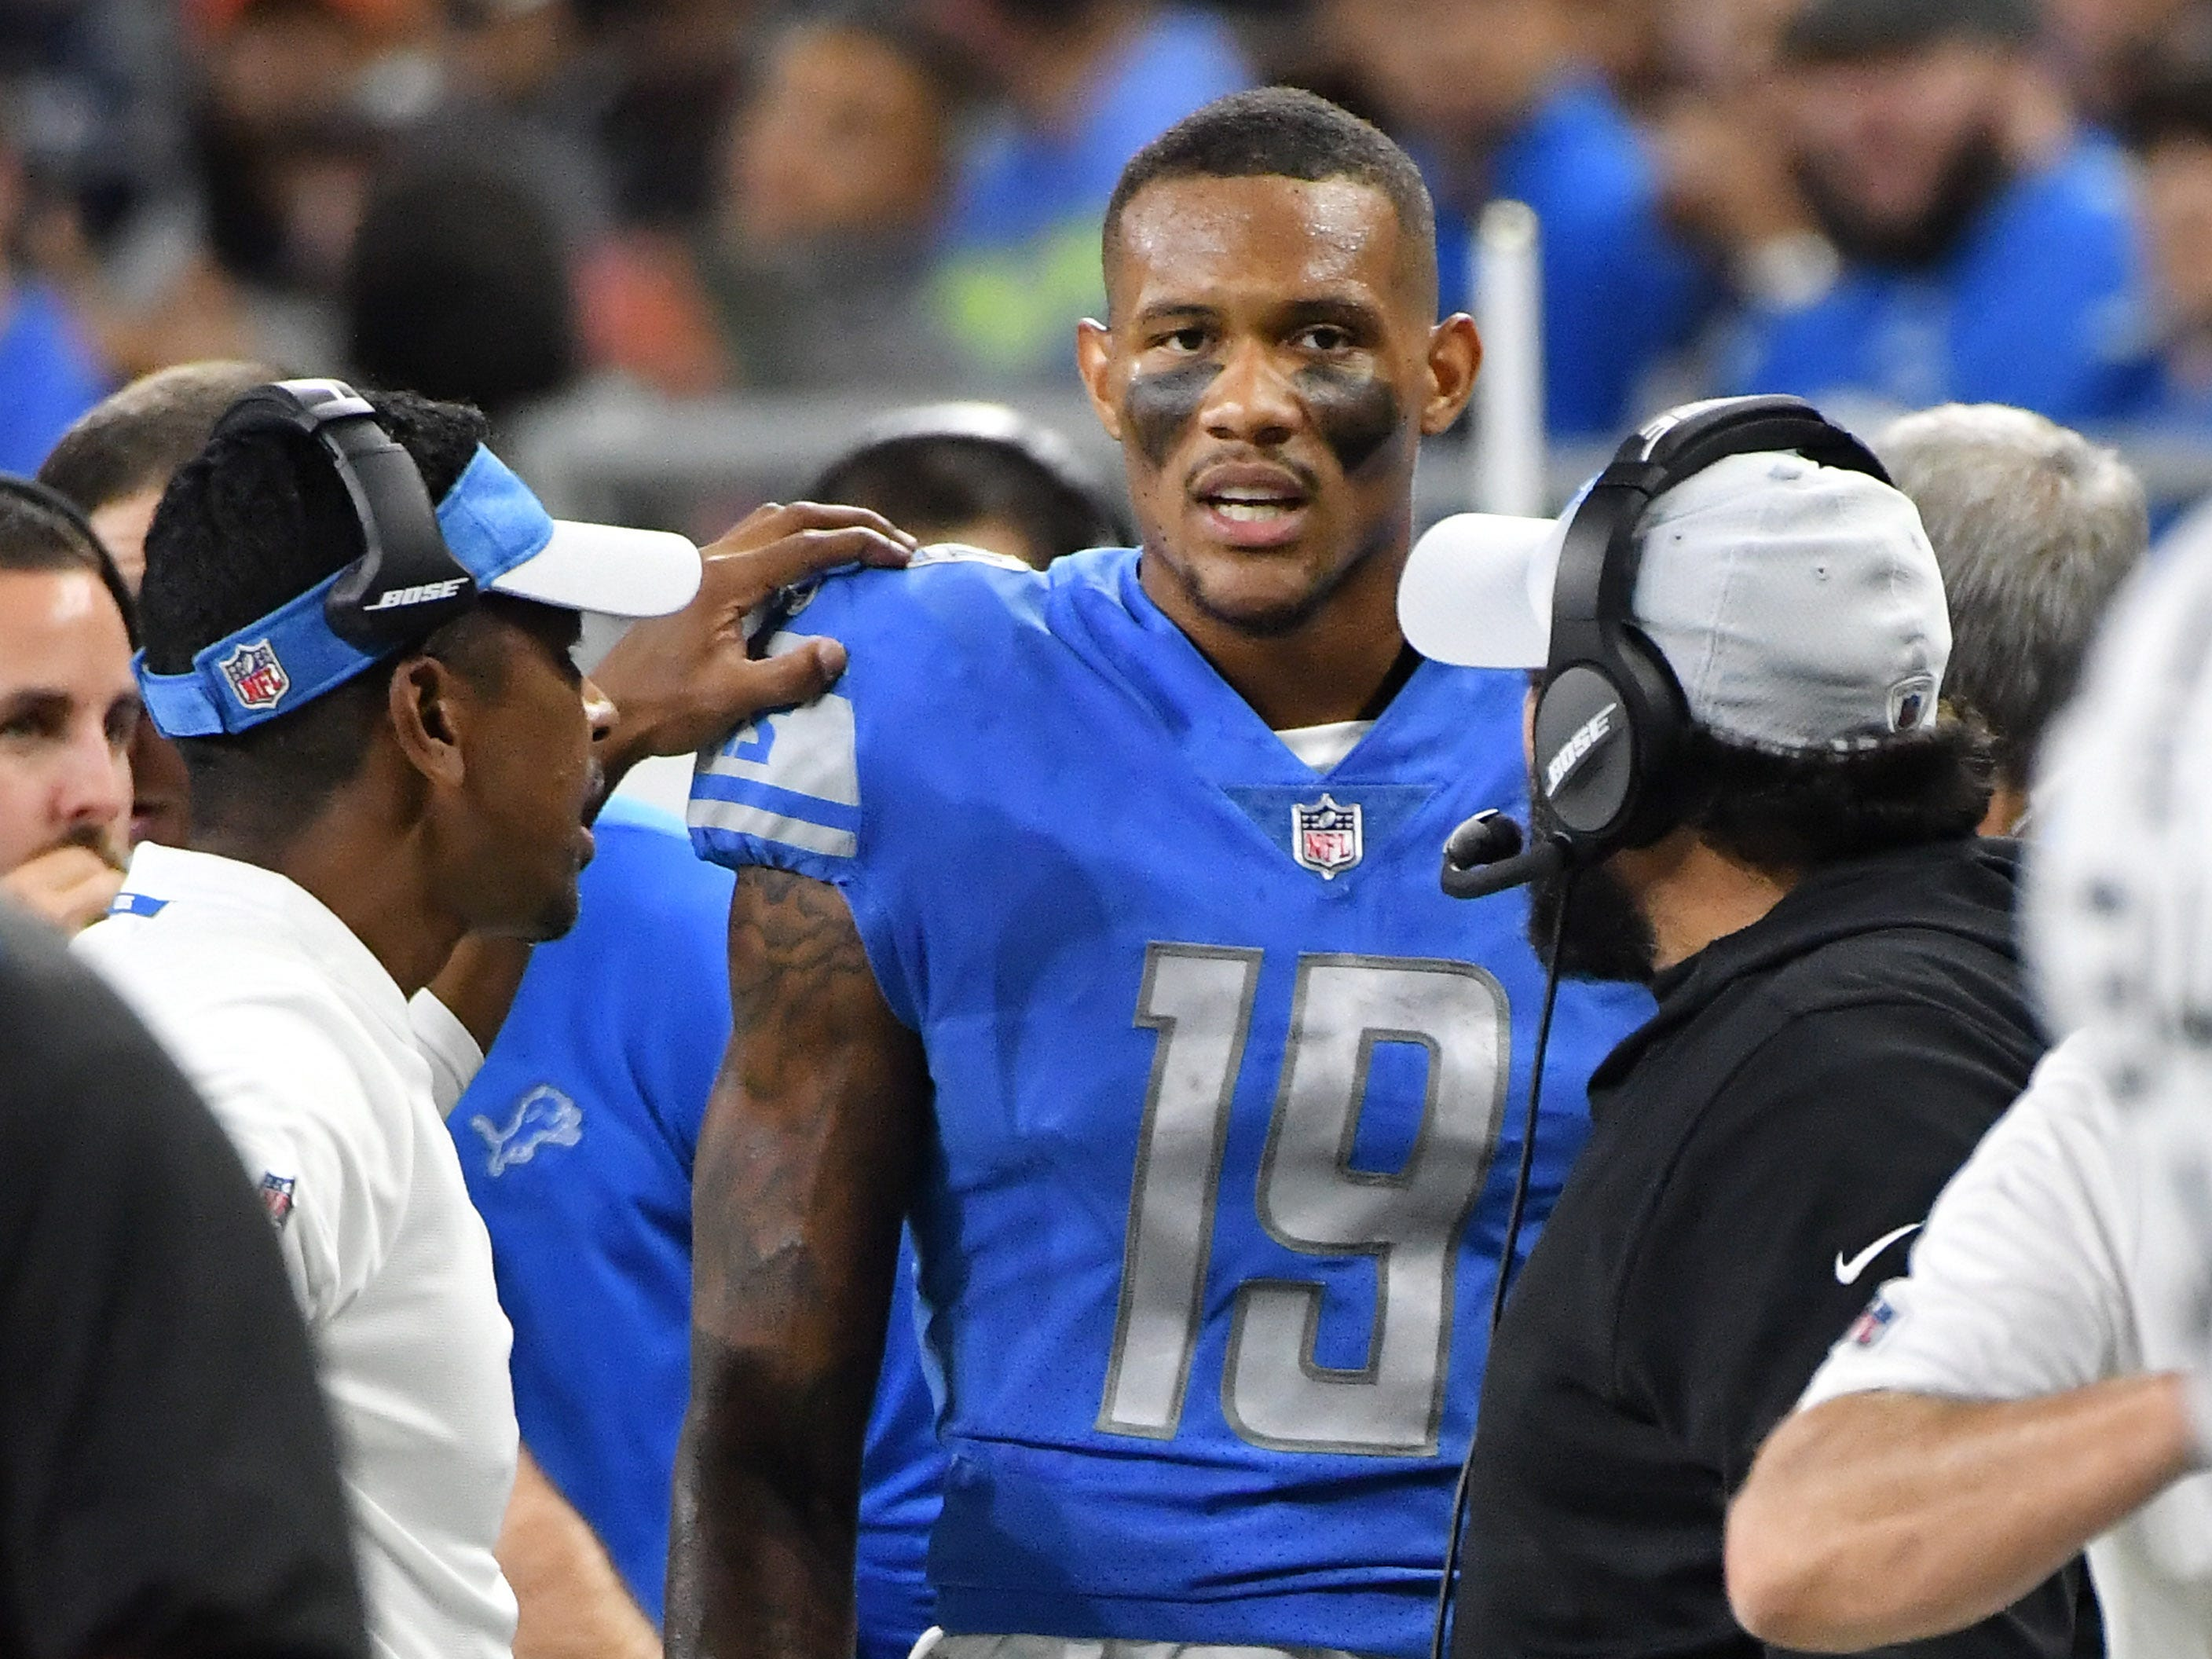 Lions' Kenny Golladay on the sidelines during the review of the goal line play in the second quarter.  After review it was ruled a touchdown.